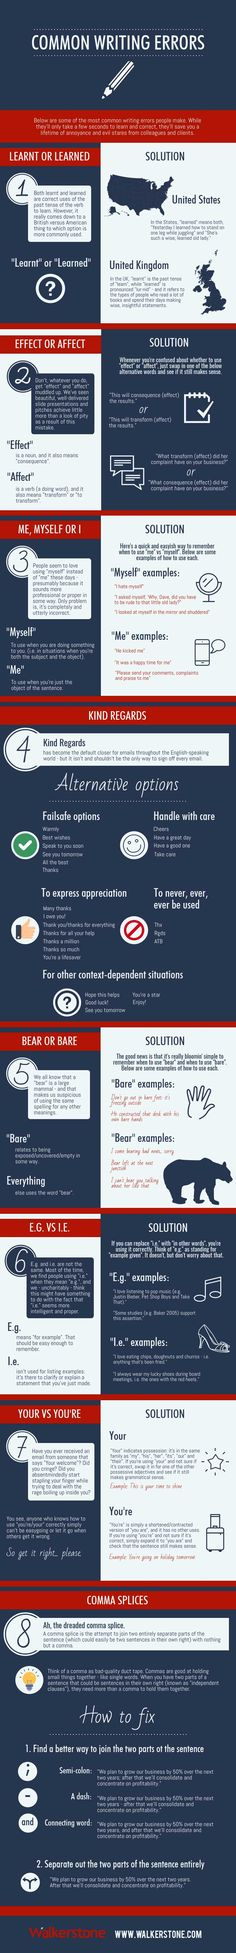 Common writing errors infographic